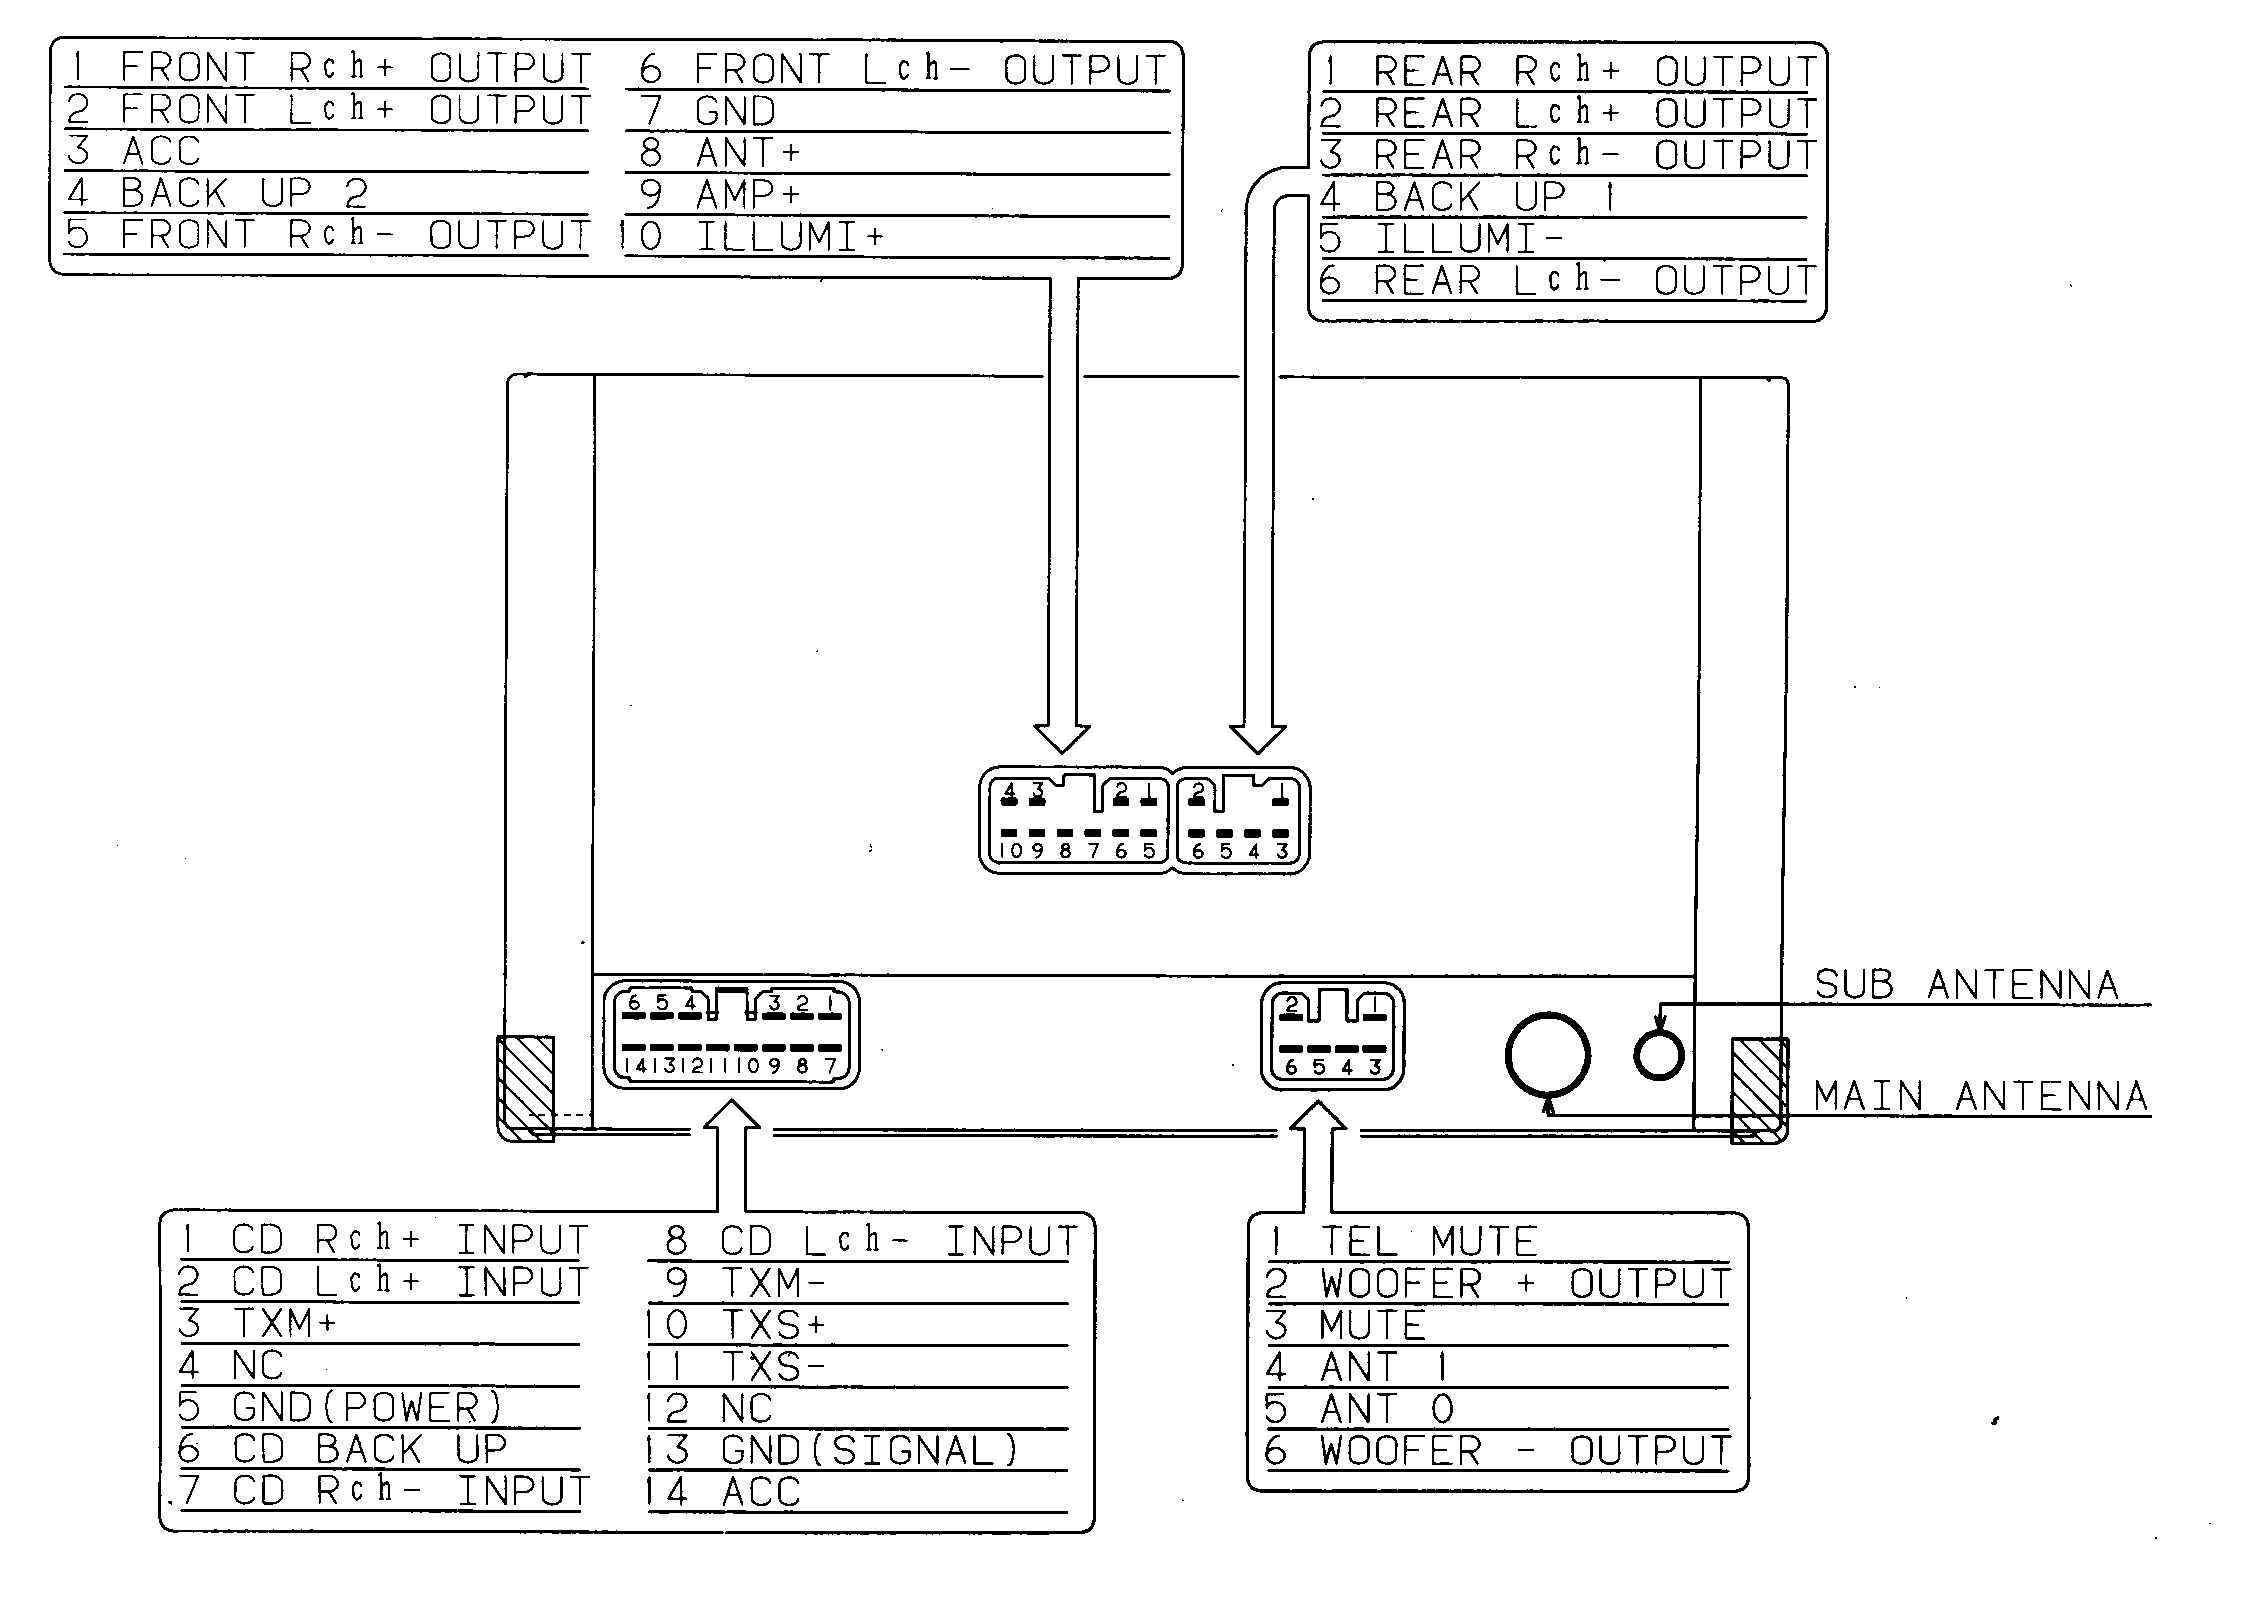 Lexus car stereo wiring diagram harness pinout connector wire 1996 jeep grand cherokee car stereo radio wiring diagram wiring 1996 jeep grand cherokee stereo wiring diagram at soozxer.org